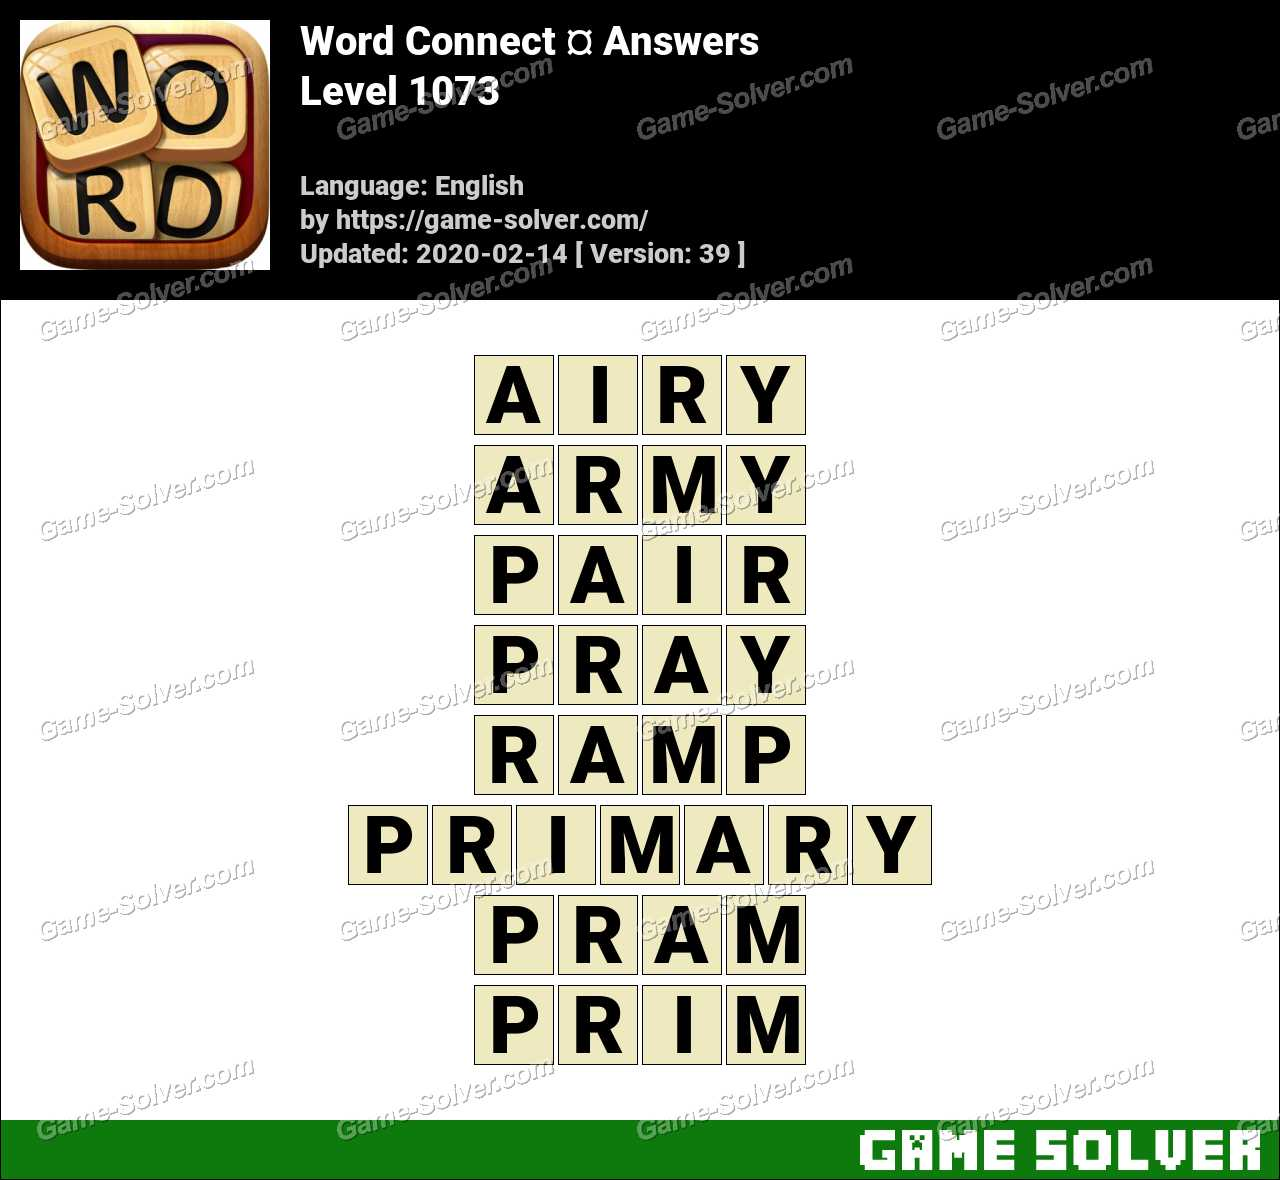 Word Connect Level 1073 Answers